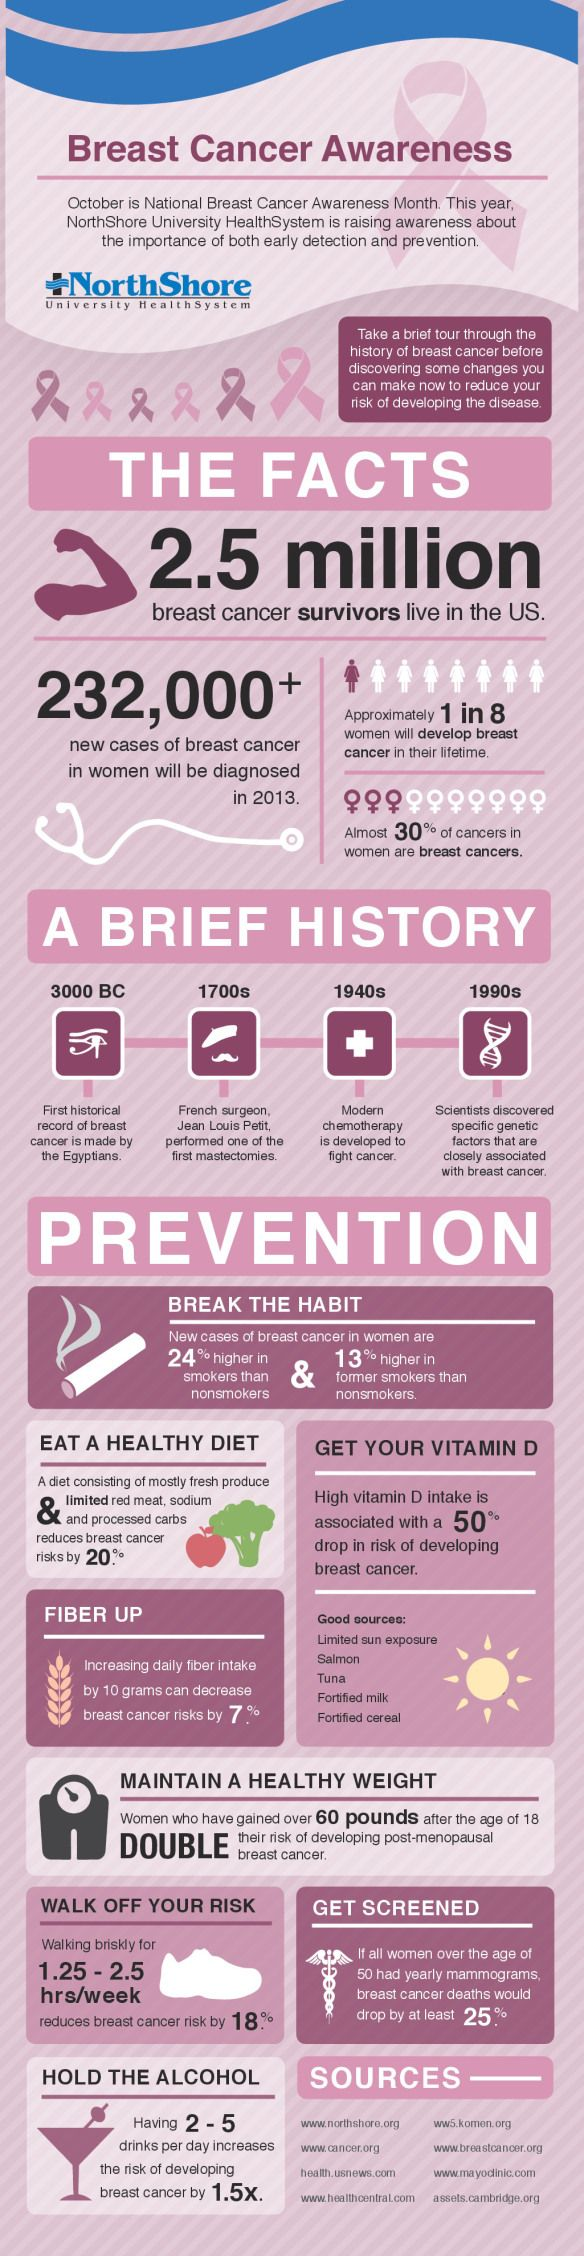 best ideas about breast cancer awareness cancer breast cancer awareness infographic breastcancer awareness infographic list